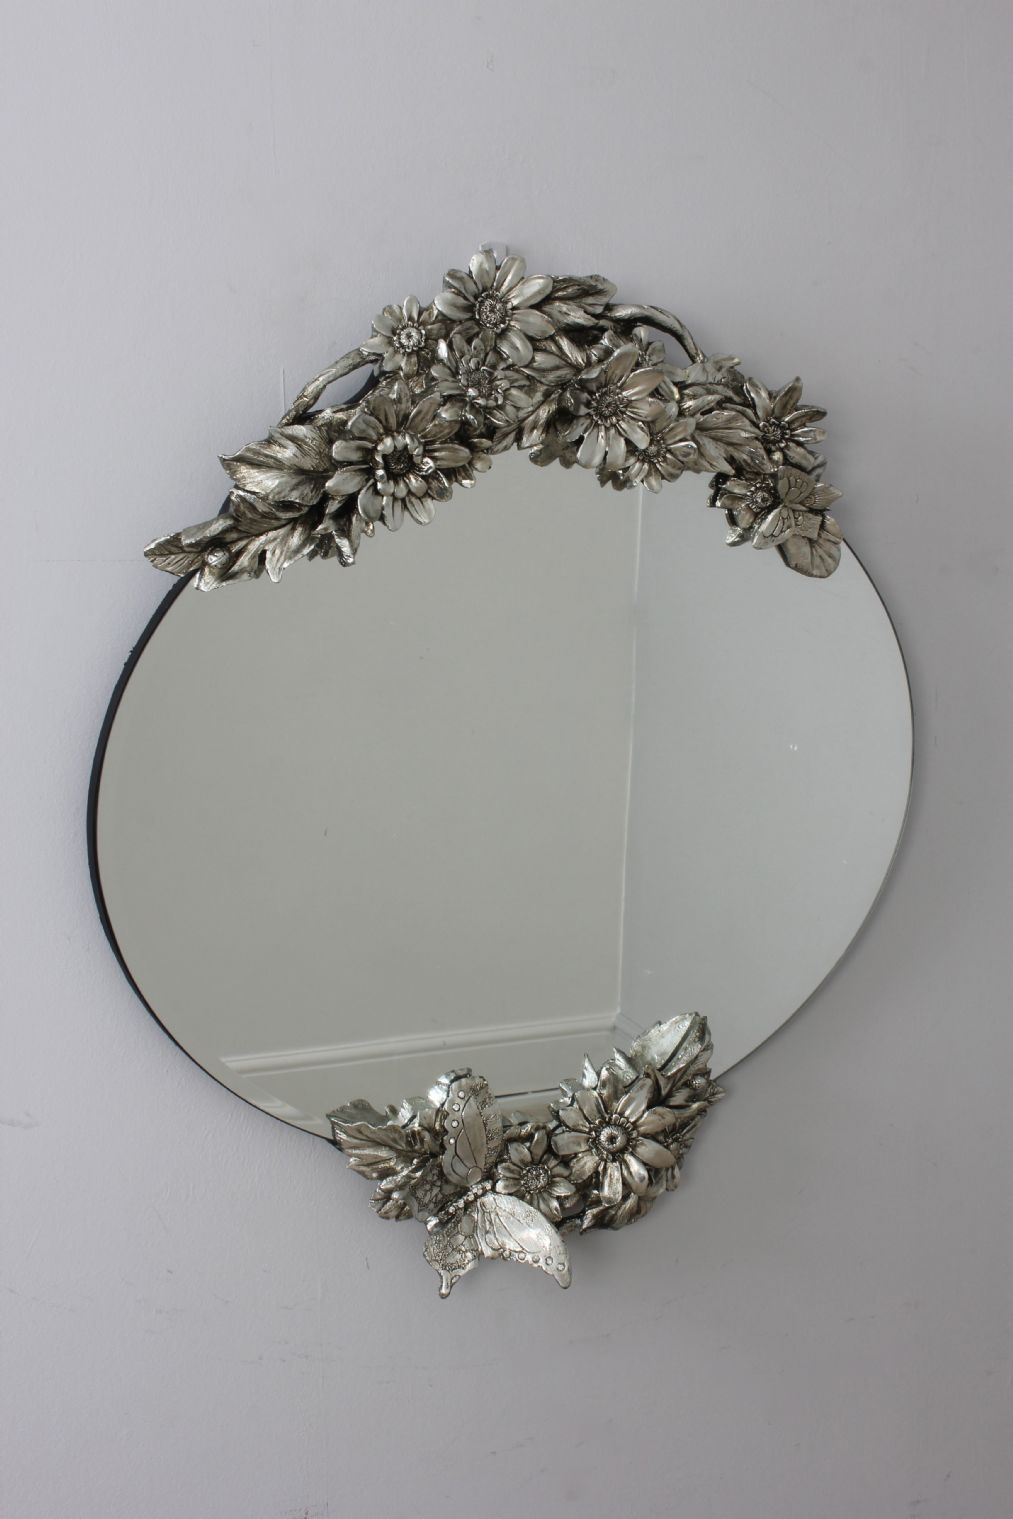 Silver Vintage Style Oval Frameless Wall Mirror With Flowers With Silver Vintage Mirror (Image 8 of 15)